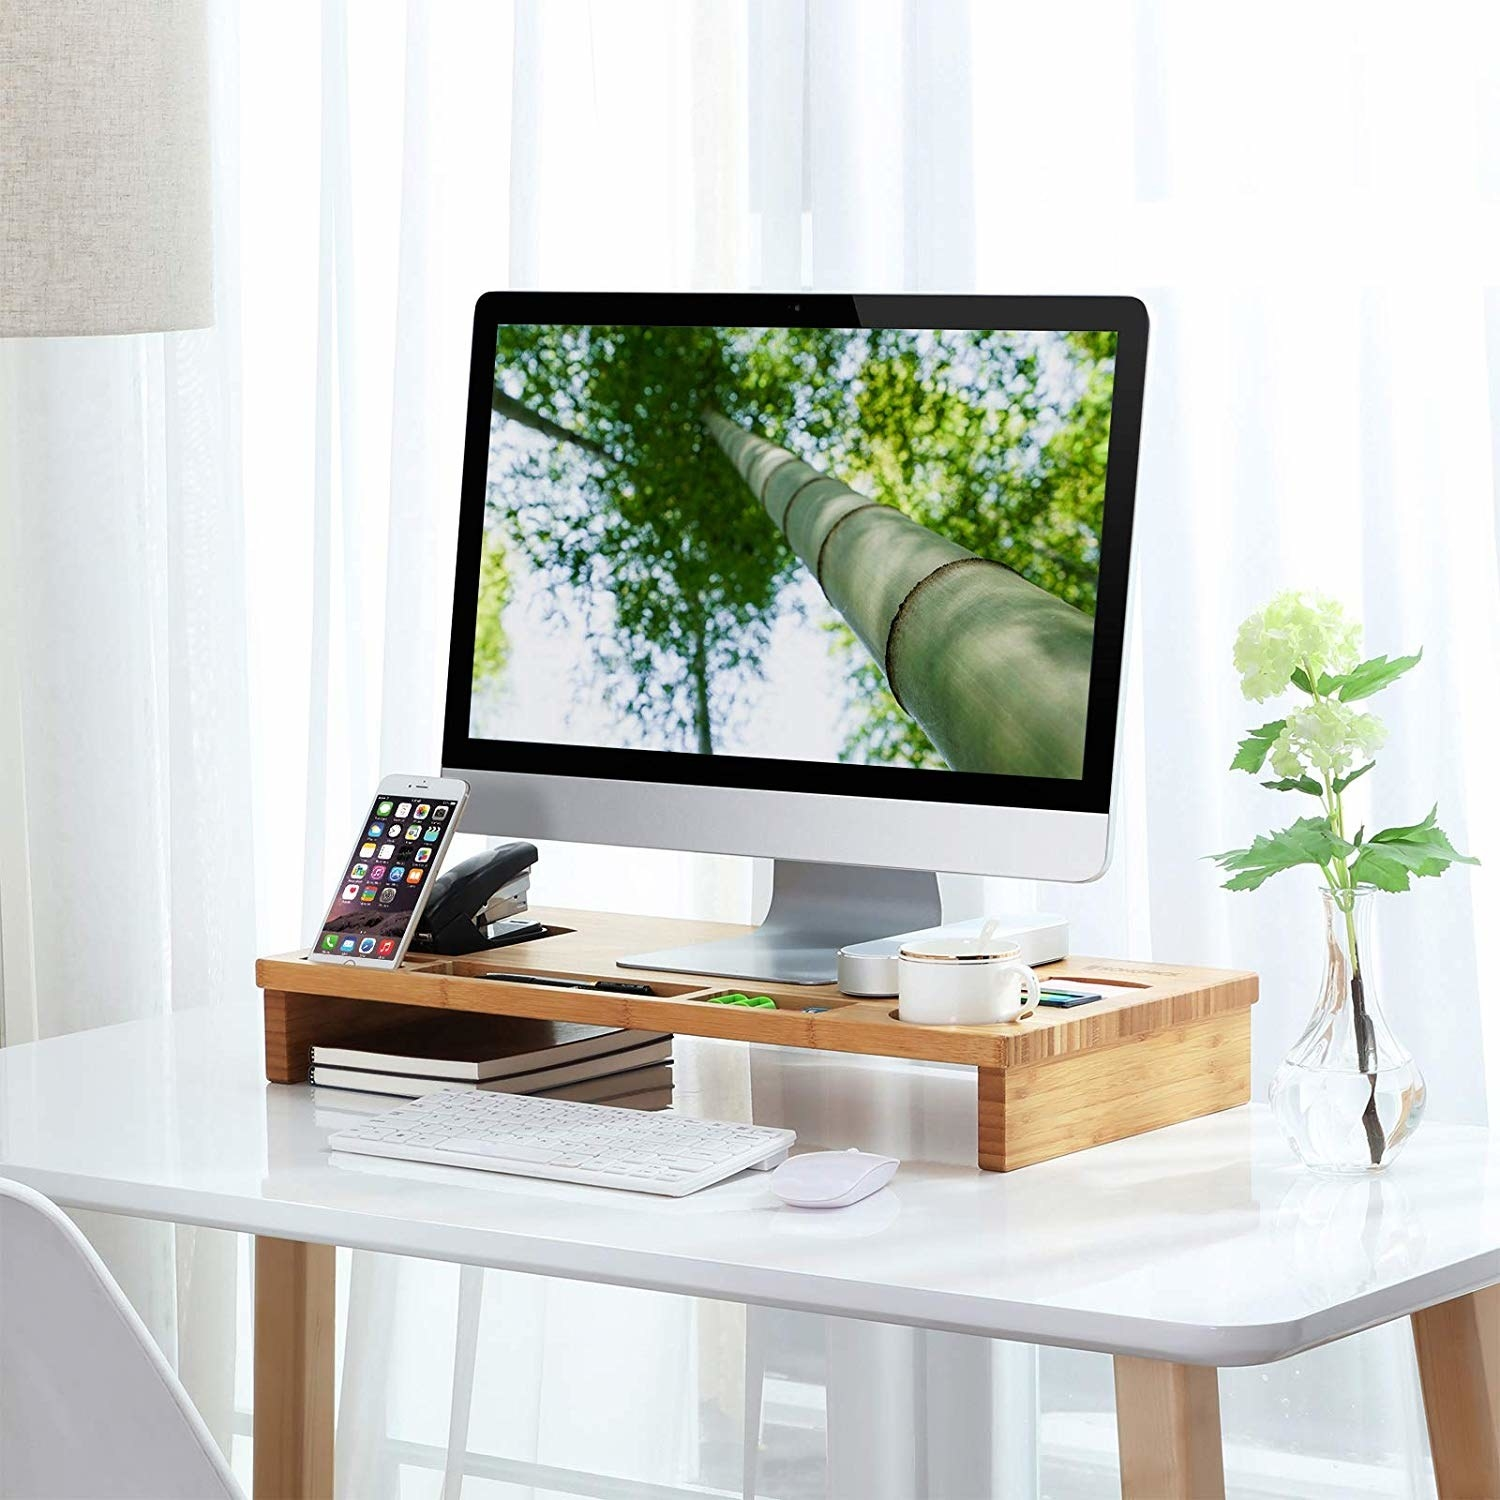 A large computer monitor on a sturdy bamboo stand